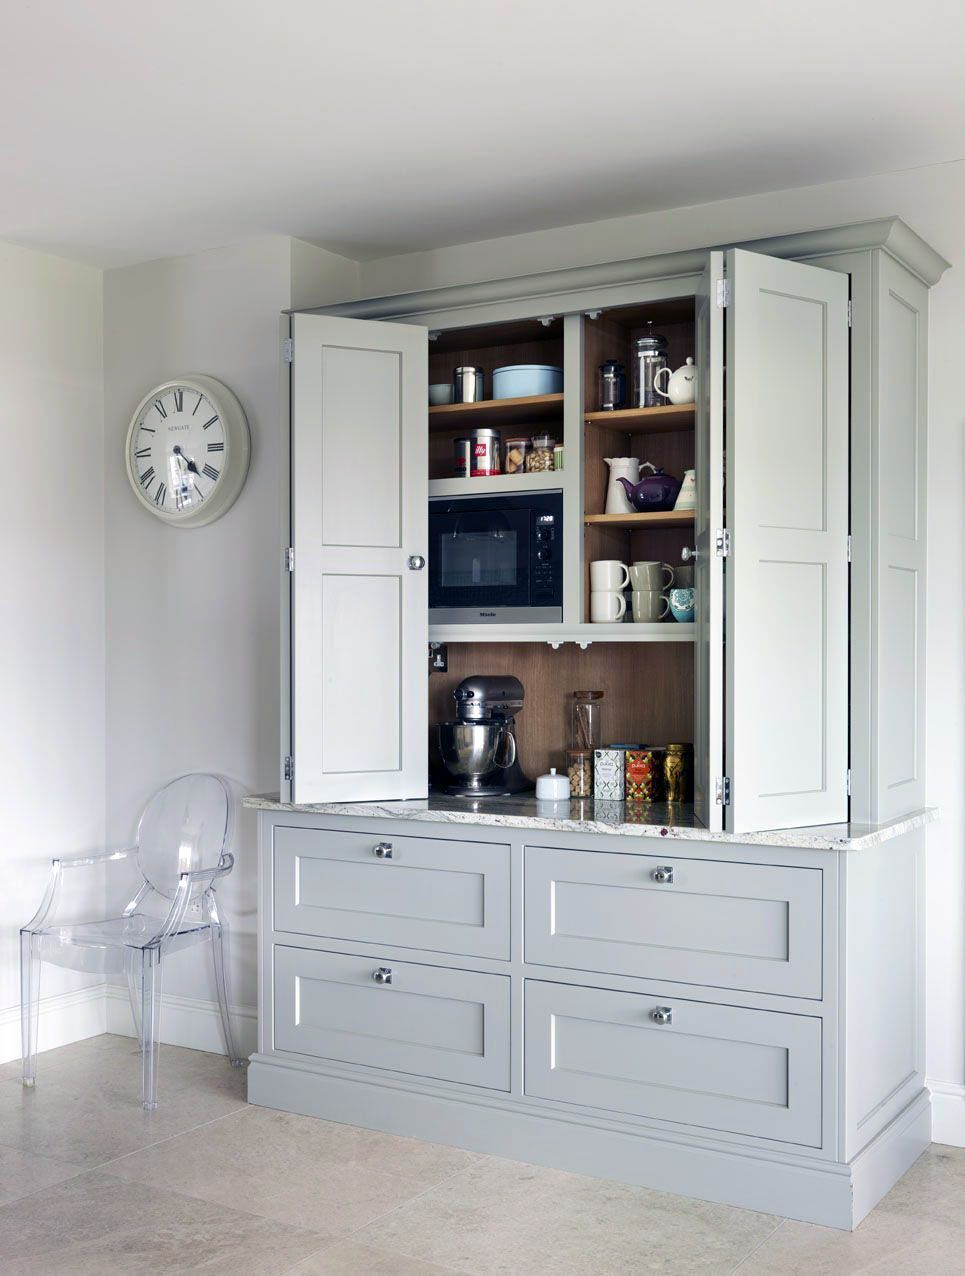 THE LEADING 16 COOKING AREA CUPBOARD IDEAS FOR 2019